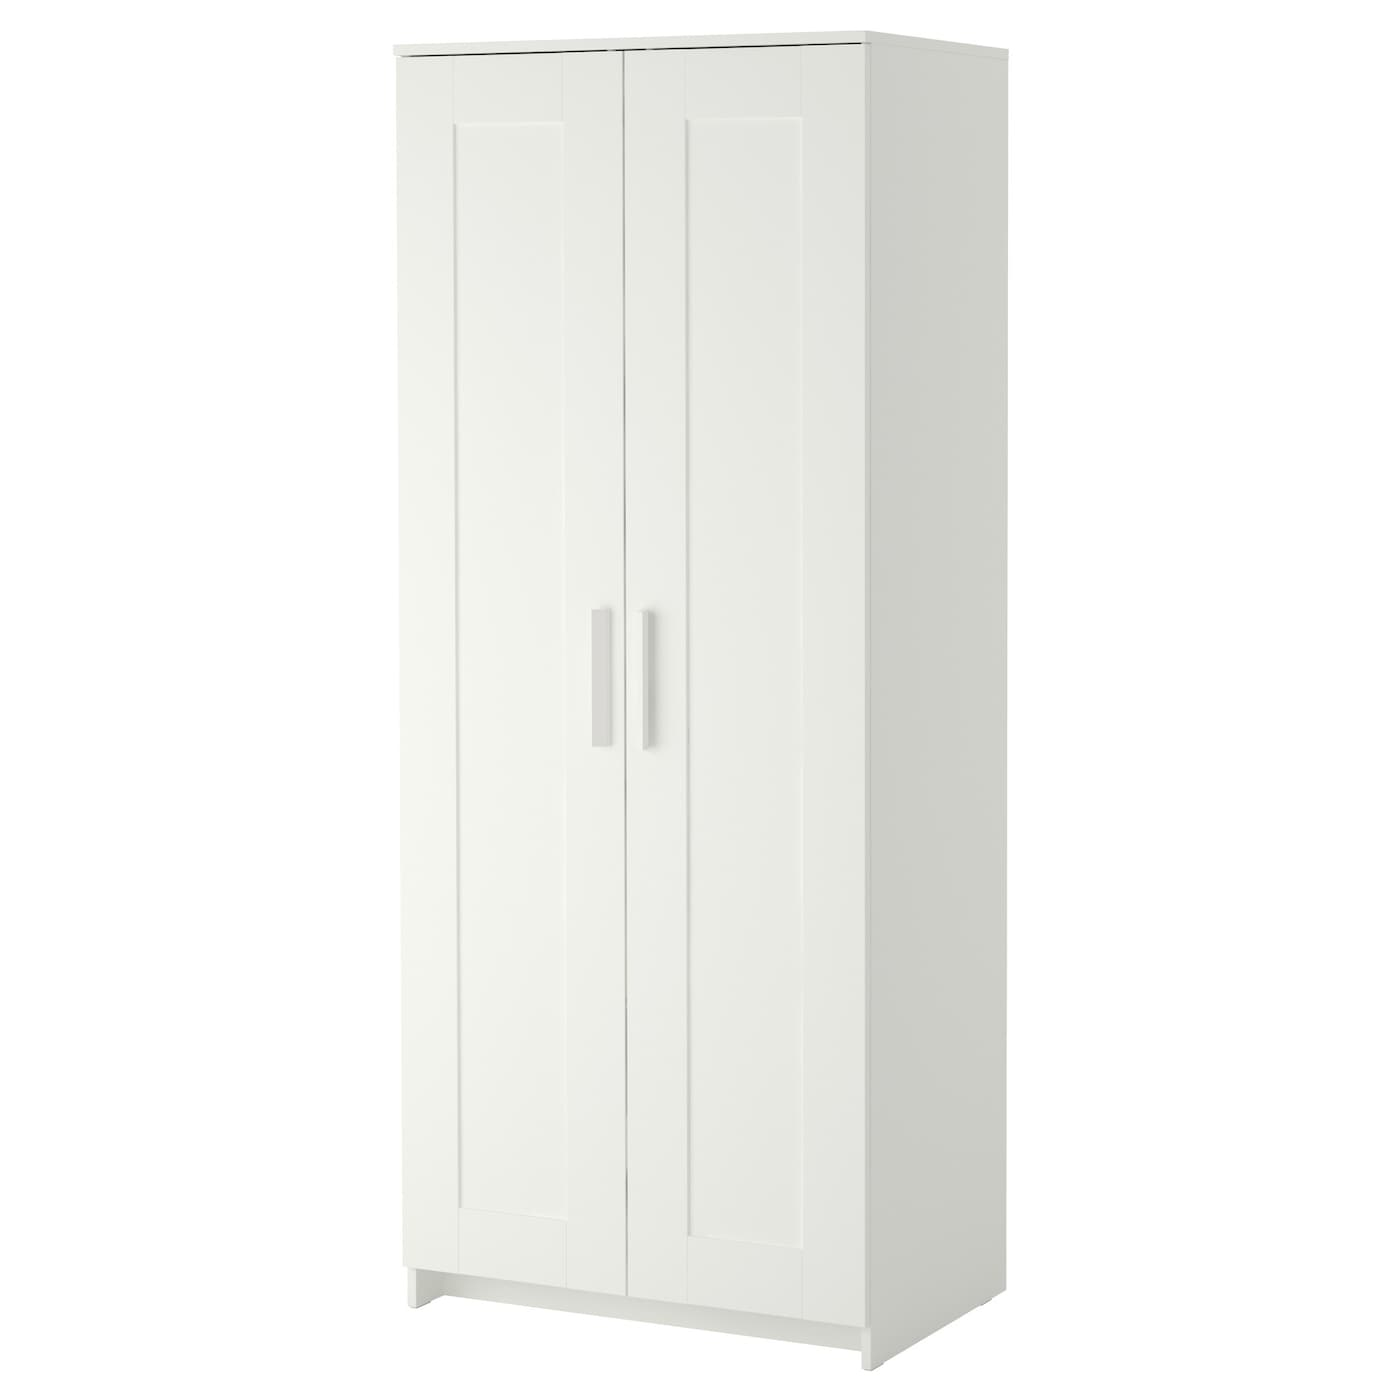 brimnes wardrobe with 2 doors white 78x190 cm ikea. Black Bedroom Furniture Sets. Home Design Ideas